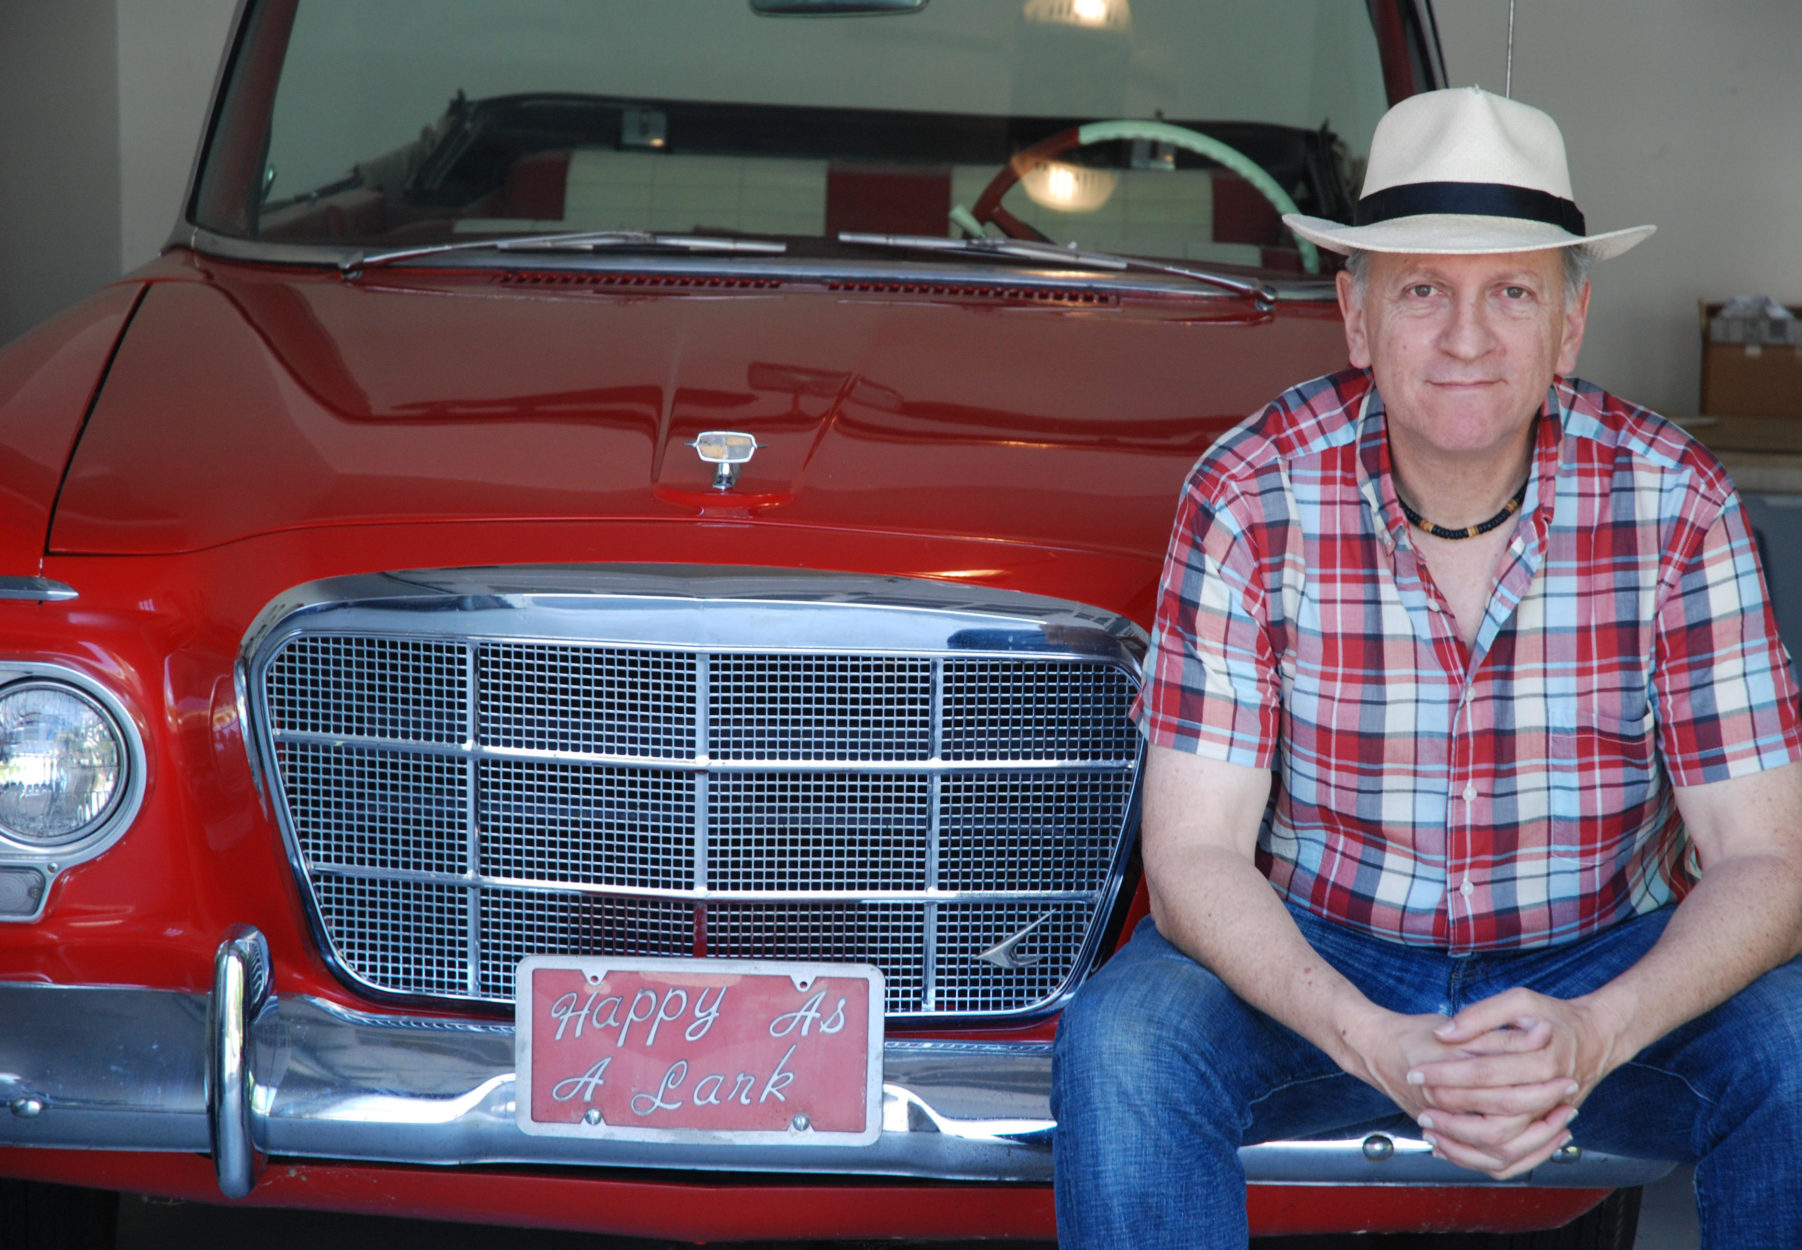 Marc Black's History of the 1950's and 60's through Popular Song at the Schoolhouse Theater.